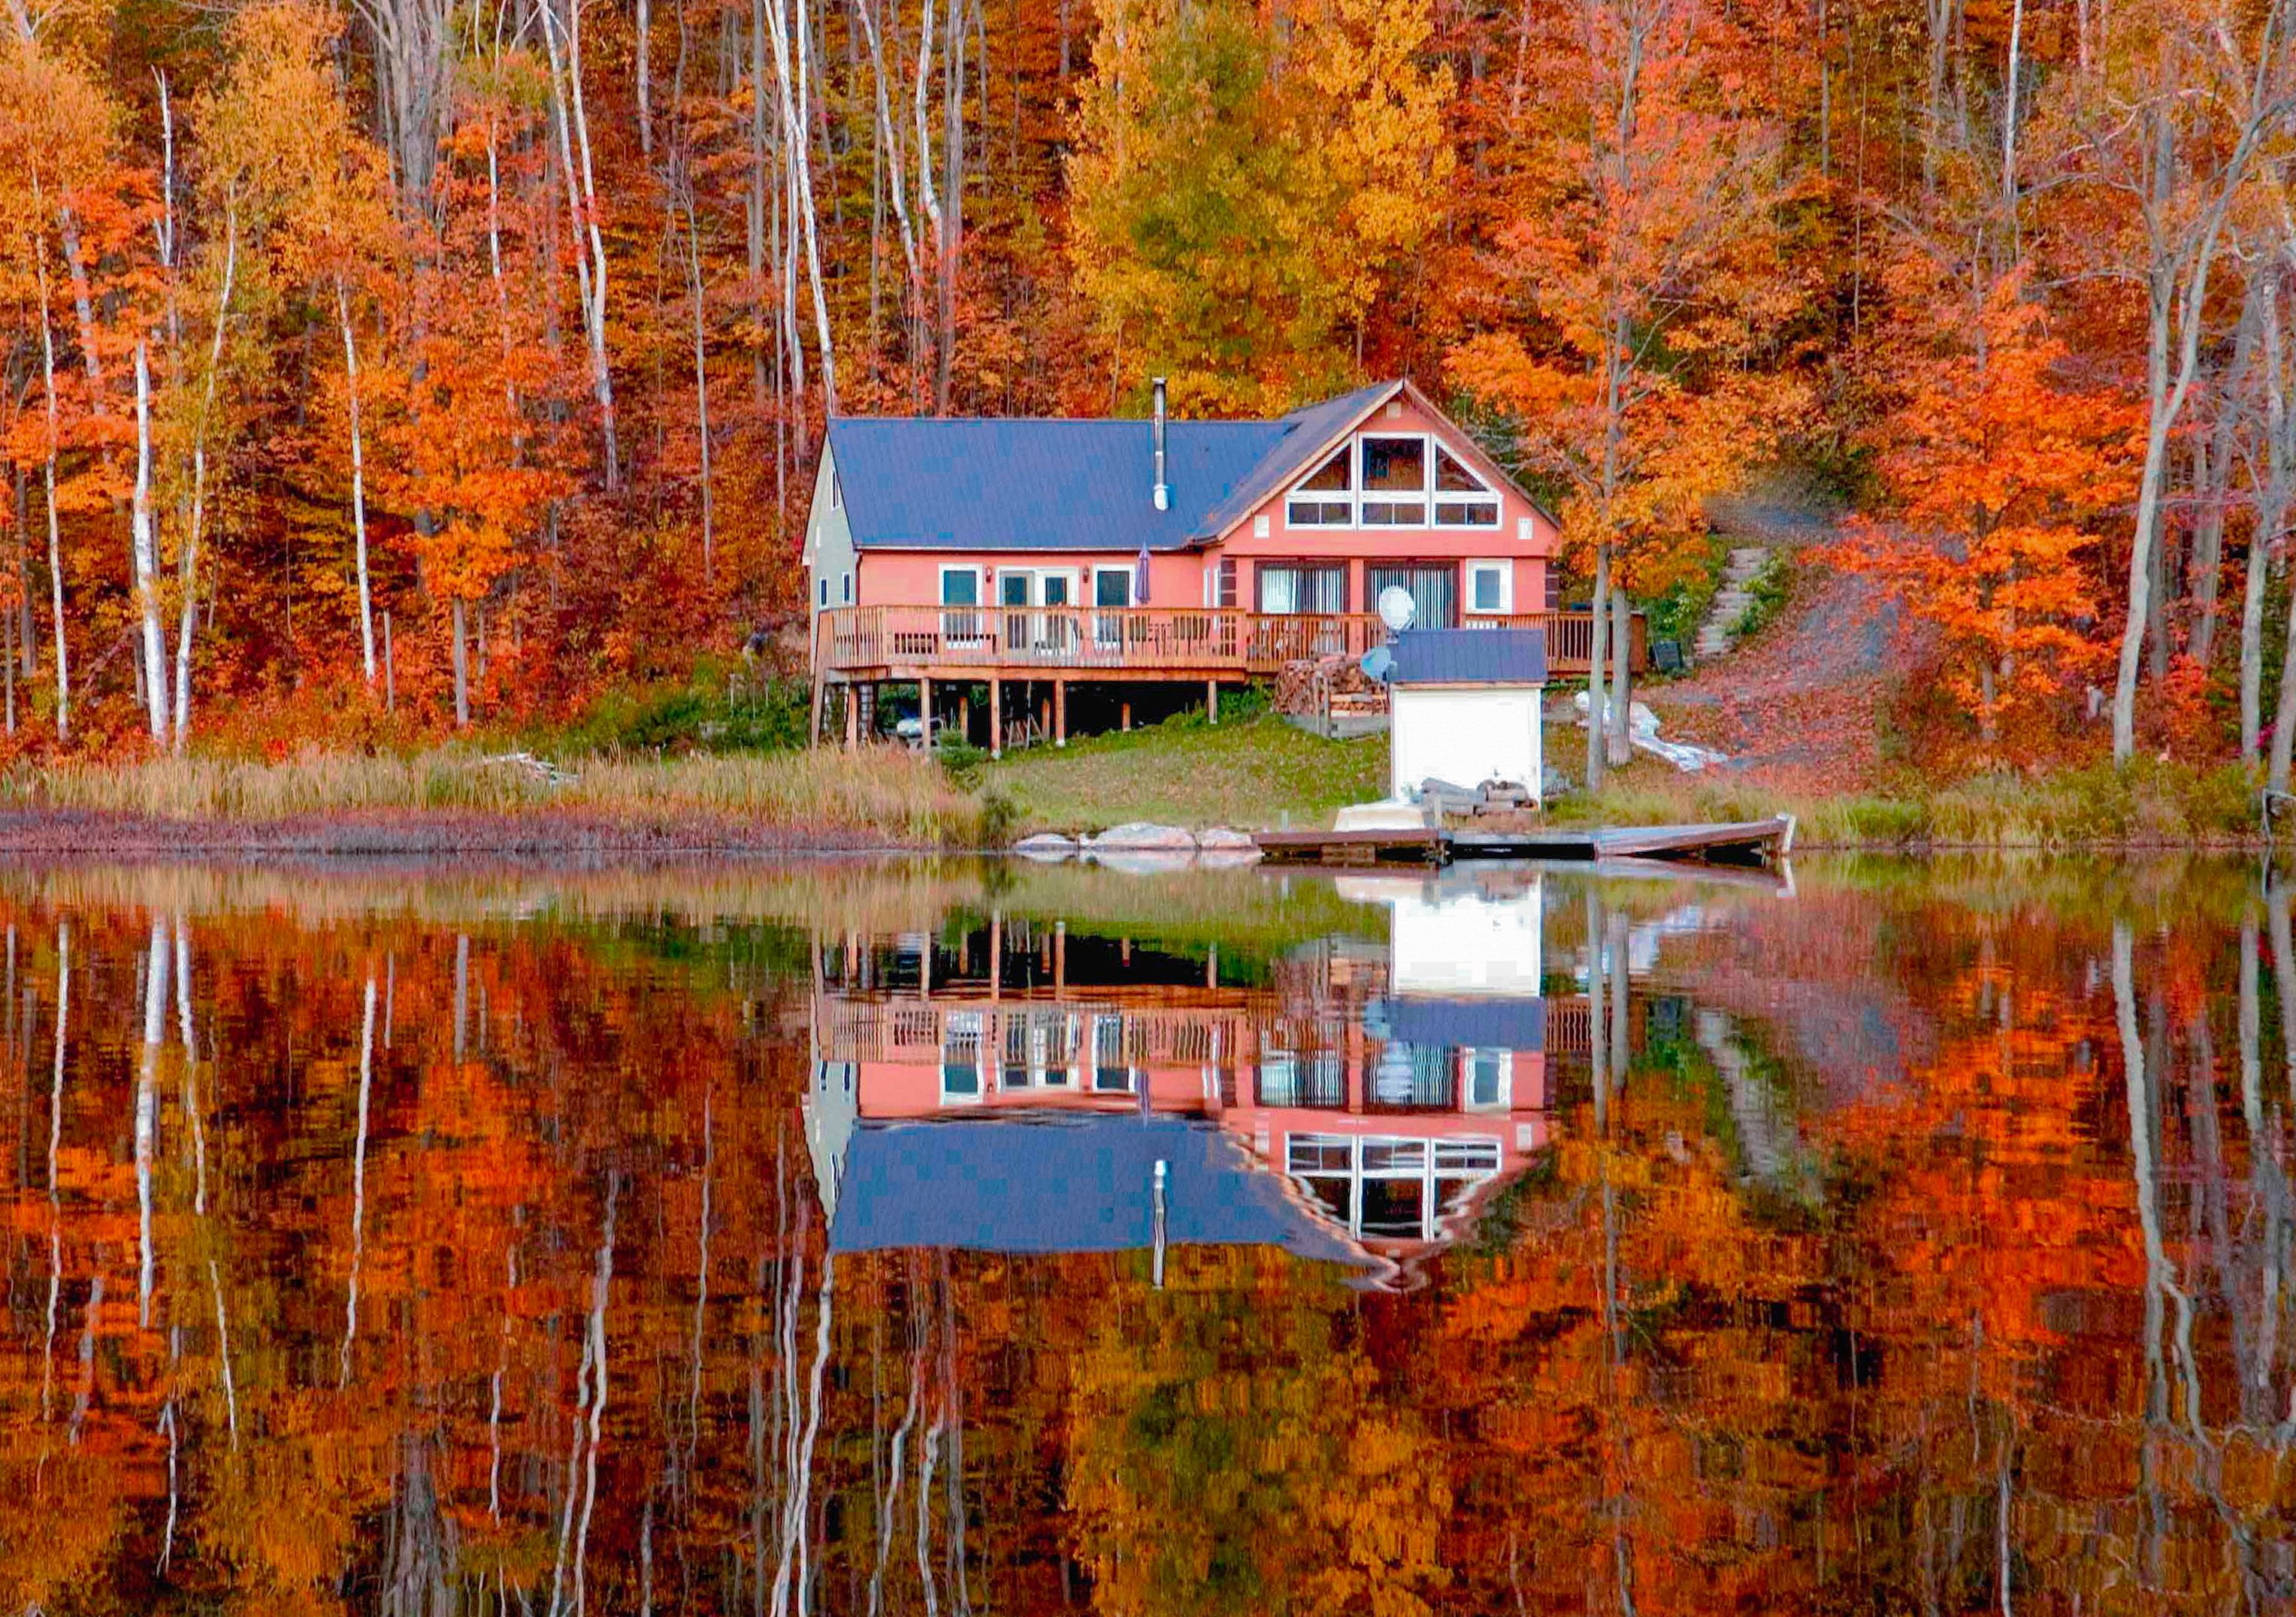 Amazing autumn colors on display in Ontario Cottage